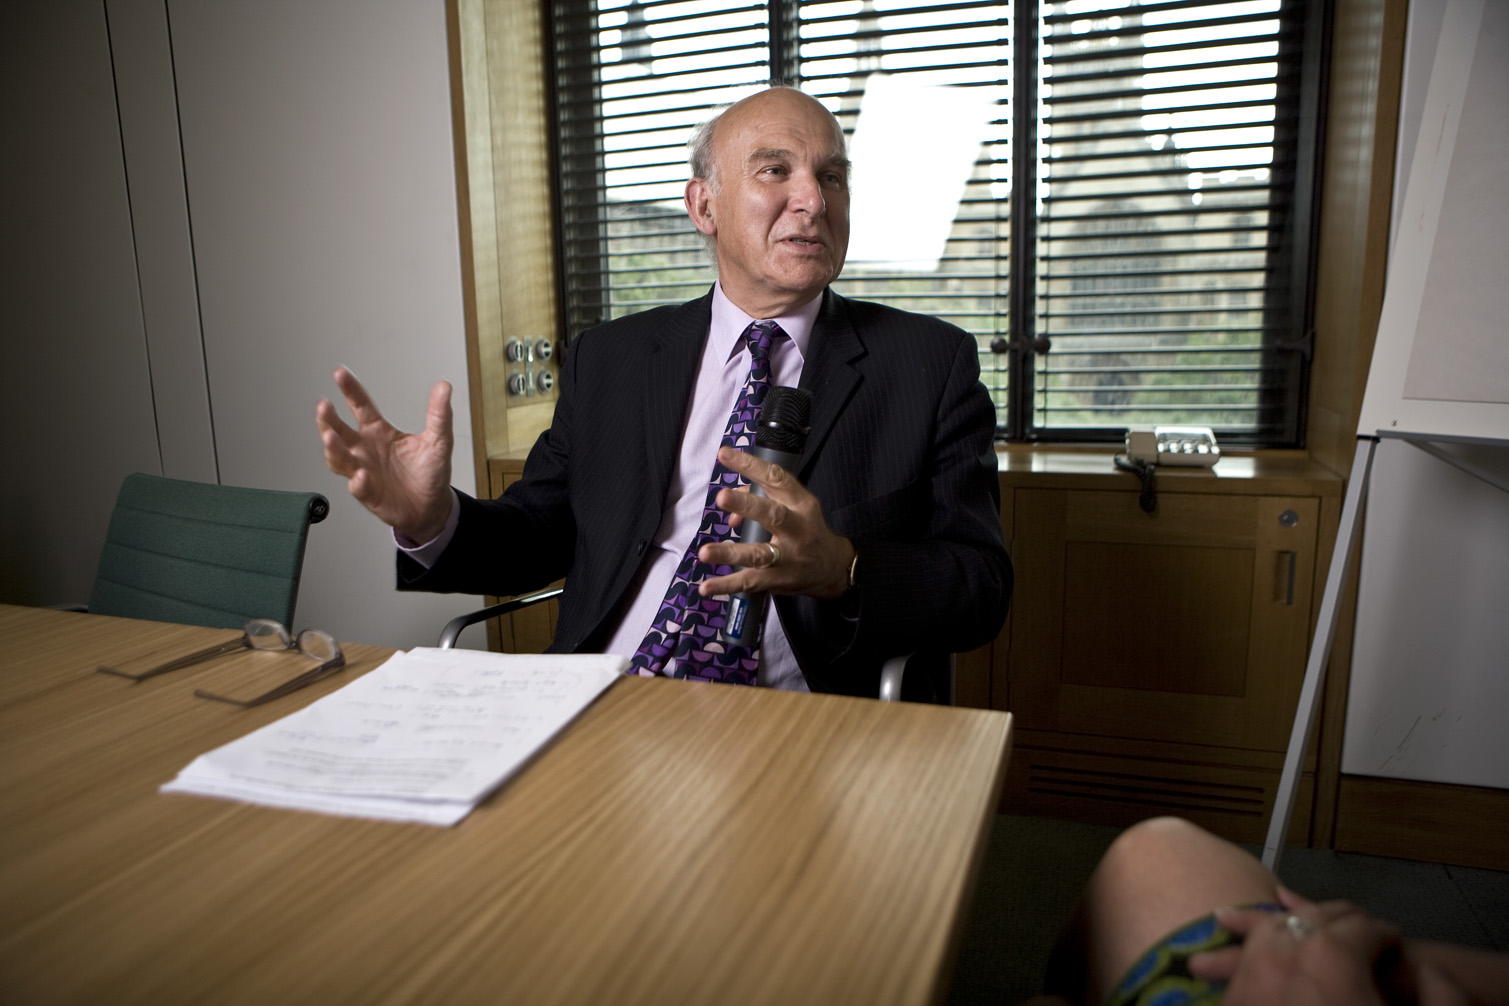 MP Vince Cable poses questions to Stephanie Flanders